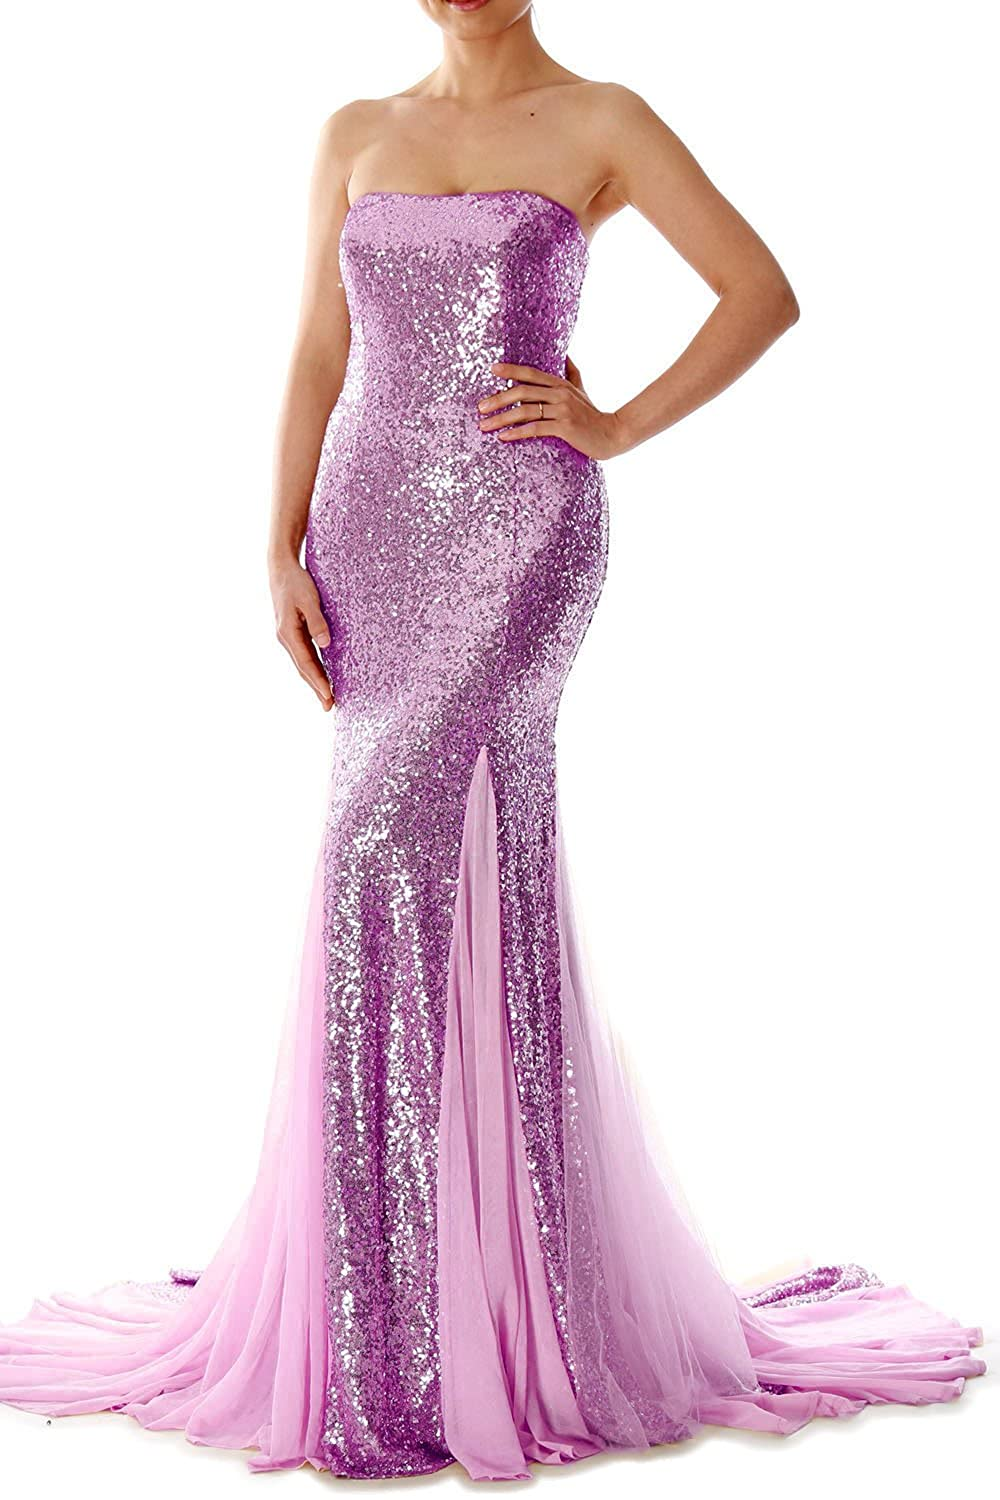 MACloth Mermaid Strapless Sequin Evening Dress Prom Formal Gown with Court Train